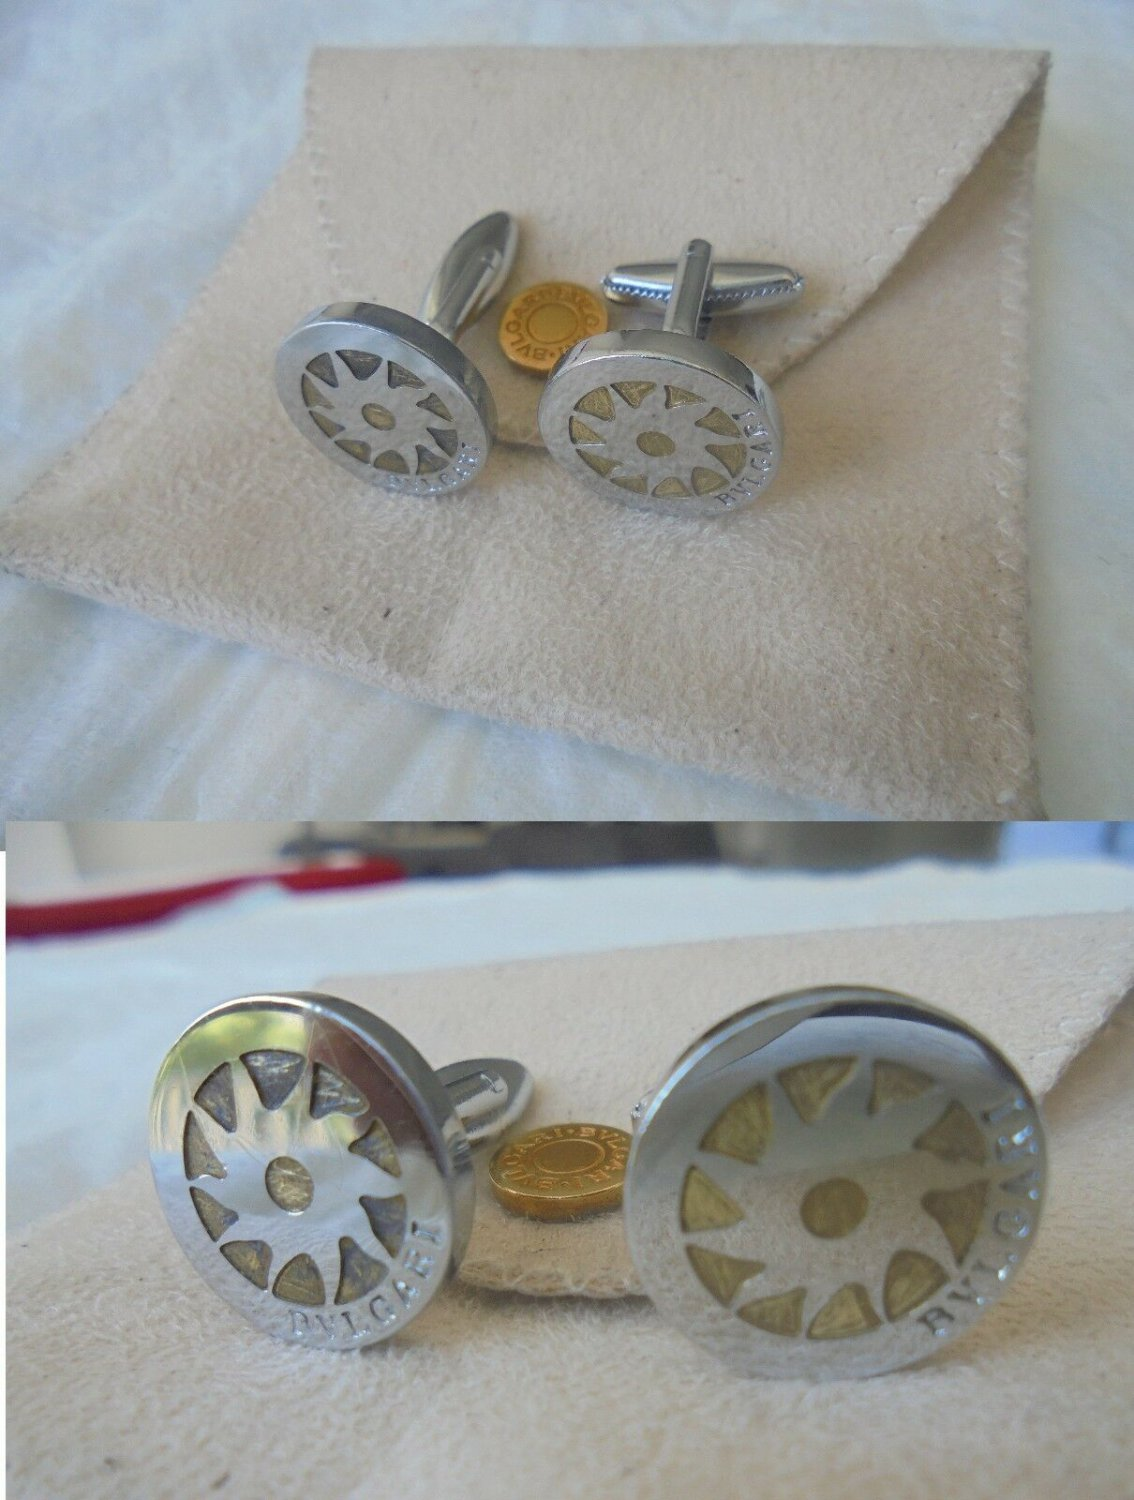 Bulgari cufflinks in steel and with inserts in gold 18KT Original in gift pochette